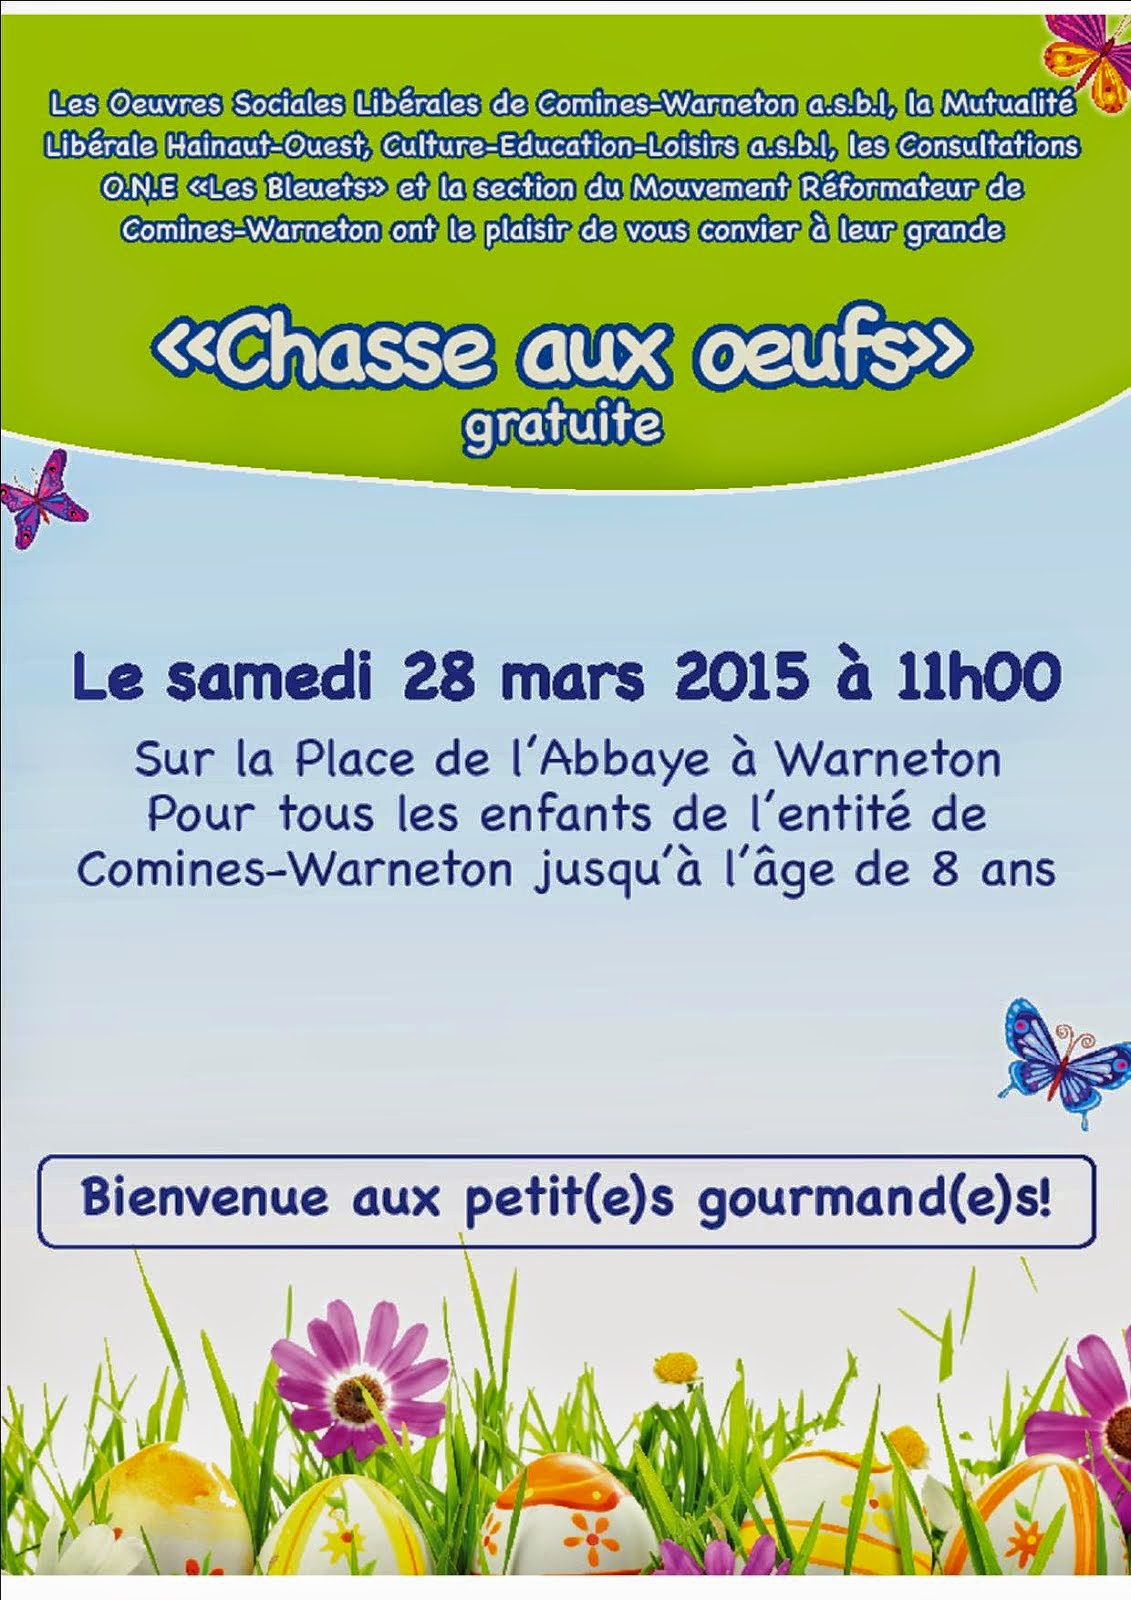 28 MARS CHASSE AUX OEUFS